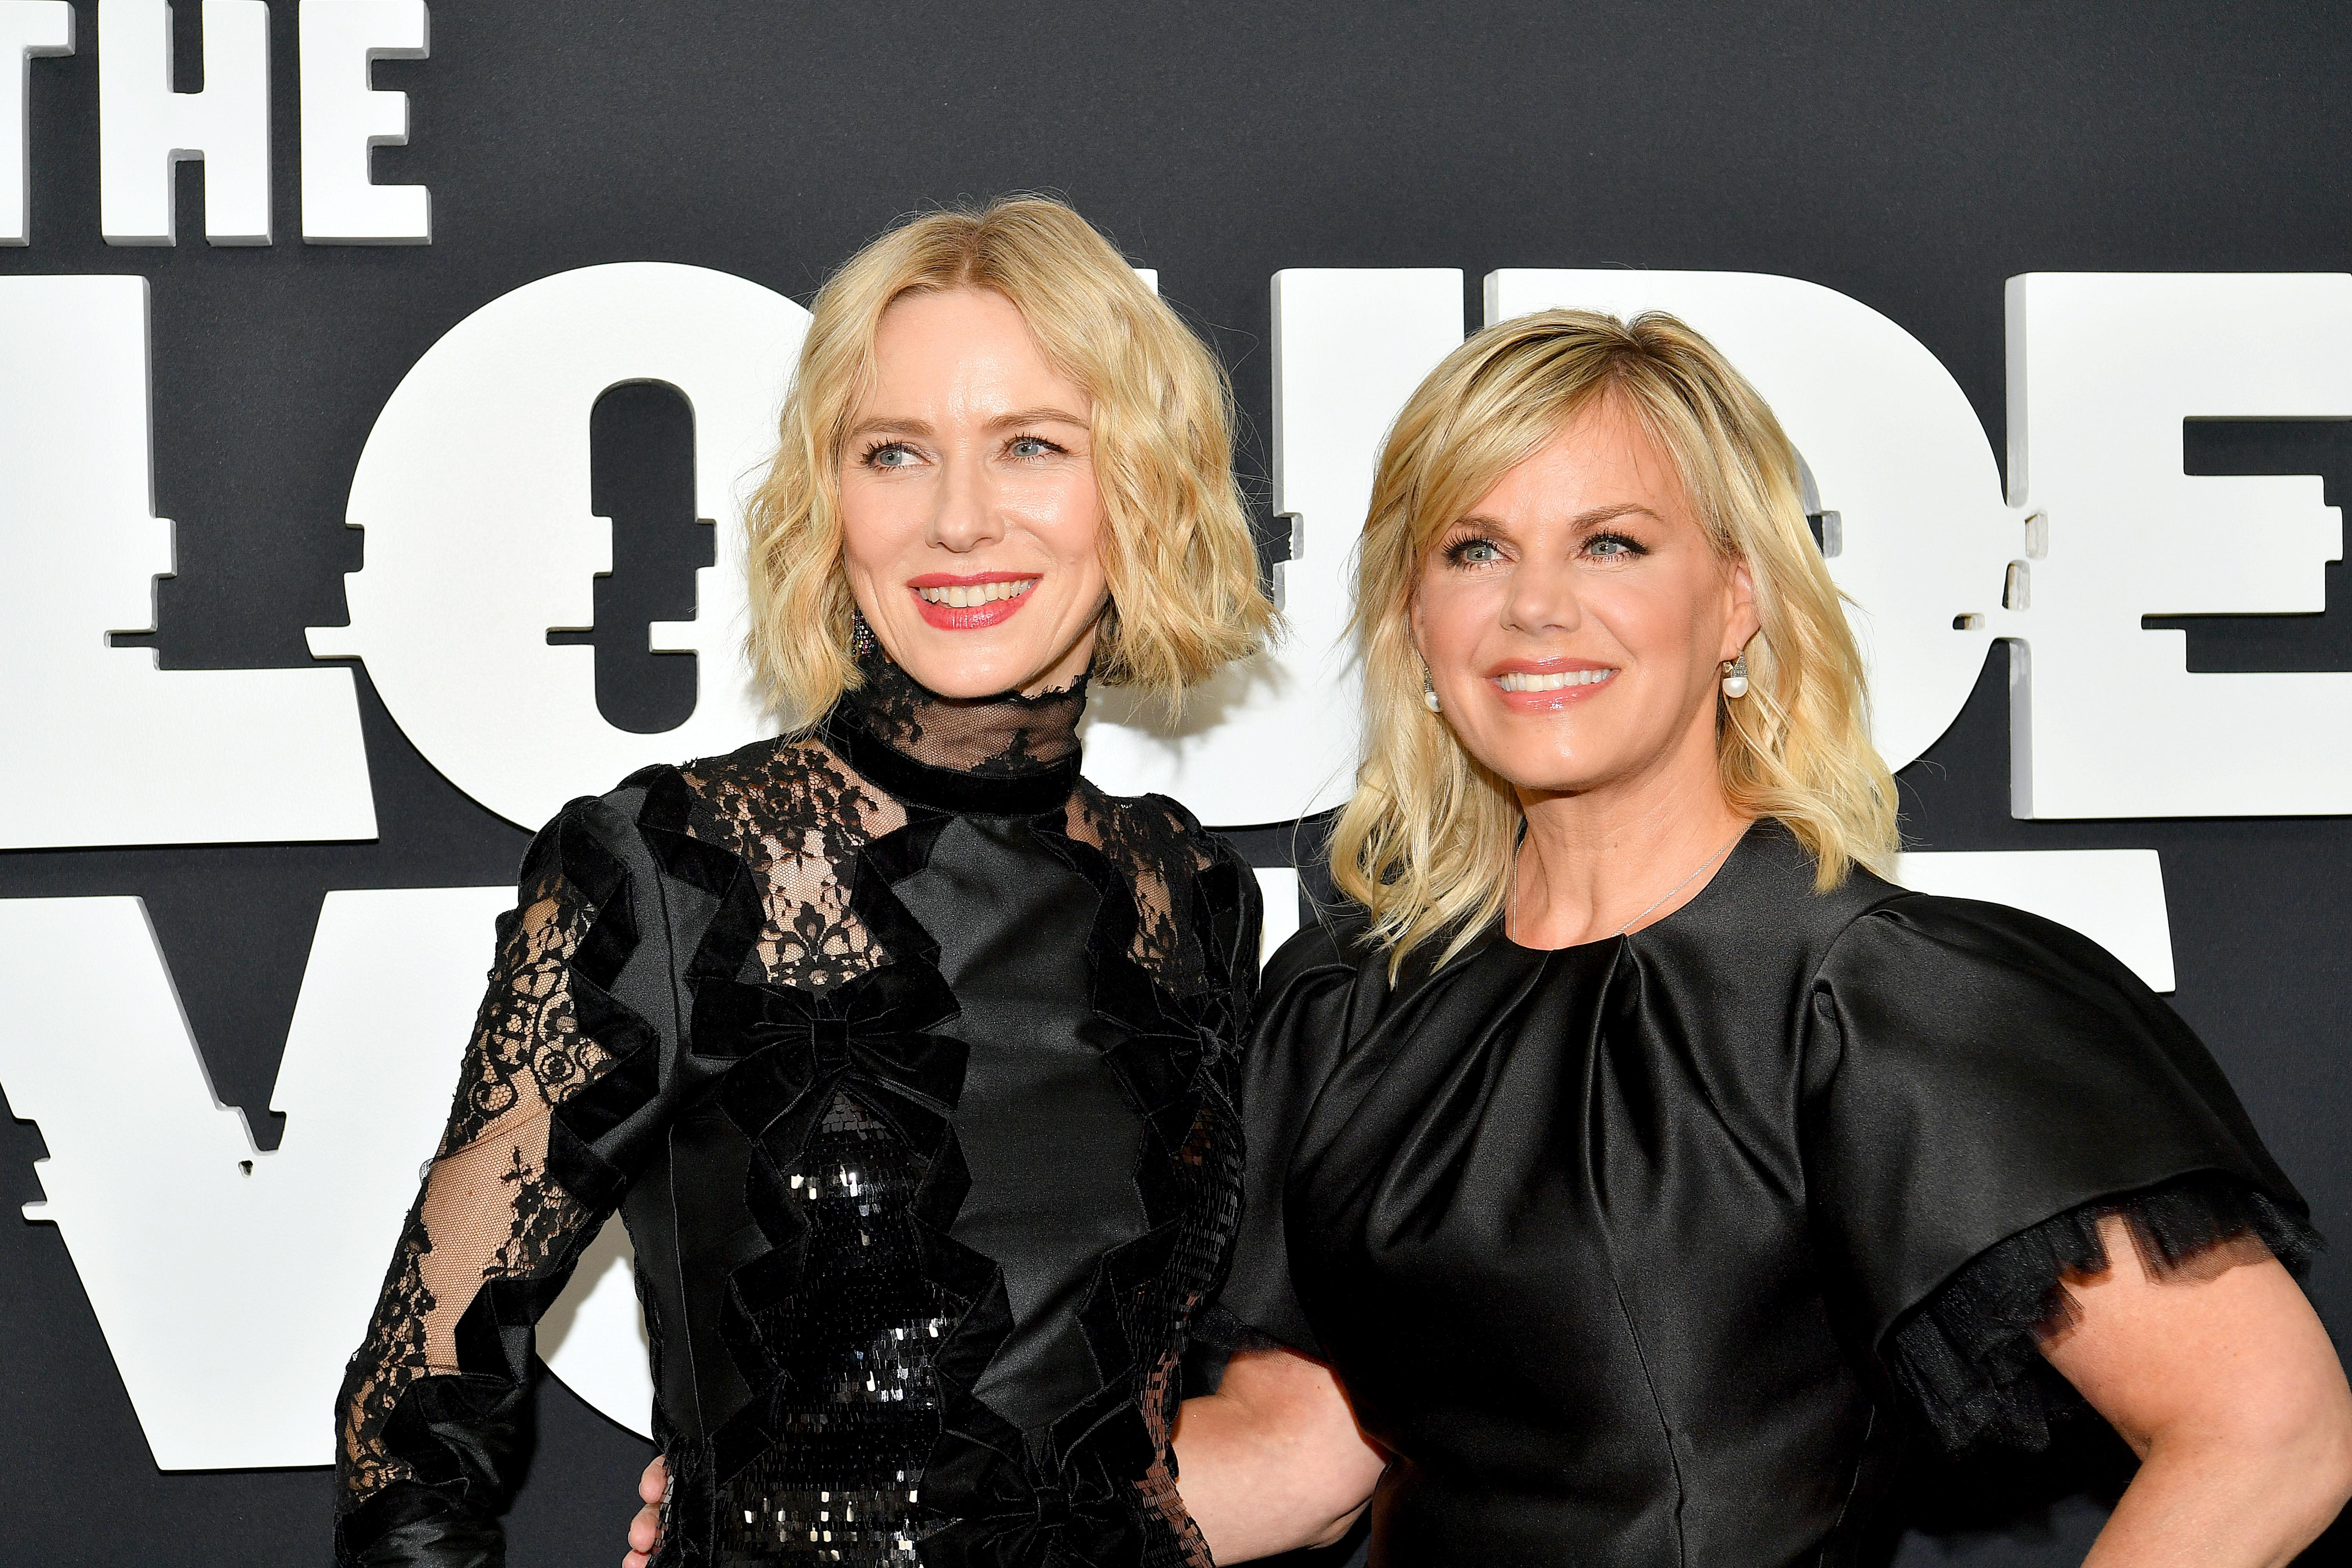 """NEW YORK, NEW YORK - JUNE 24: Naomi Watts and Gretchen Carlson attend """"The Loudest Voice"""" New York Premiere at Paris Theatre on June 24, 2019 in New York City. (Photo by Dia Dipasupil/WireImage,)"""